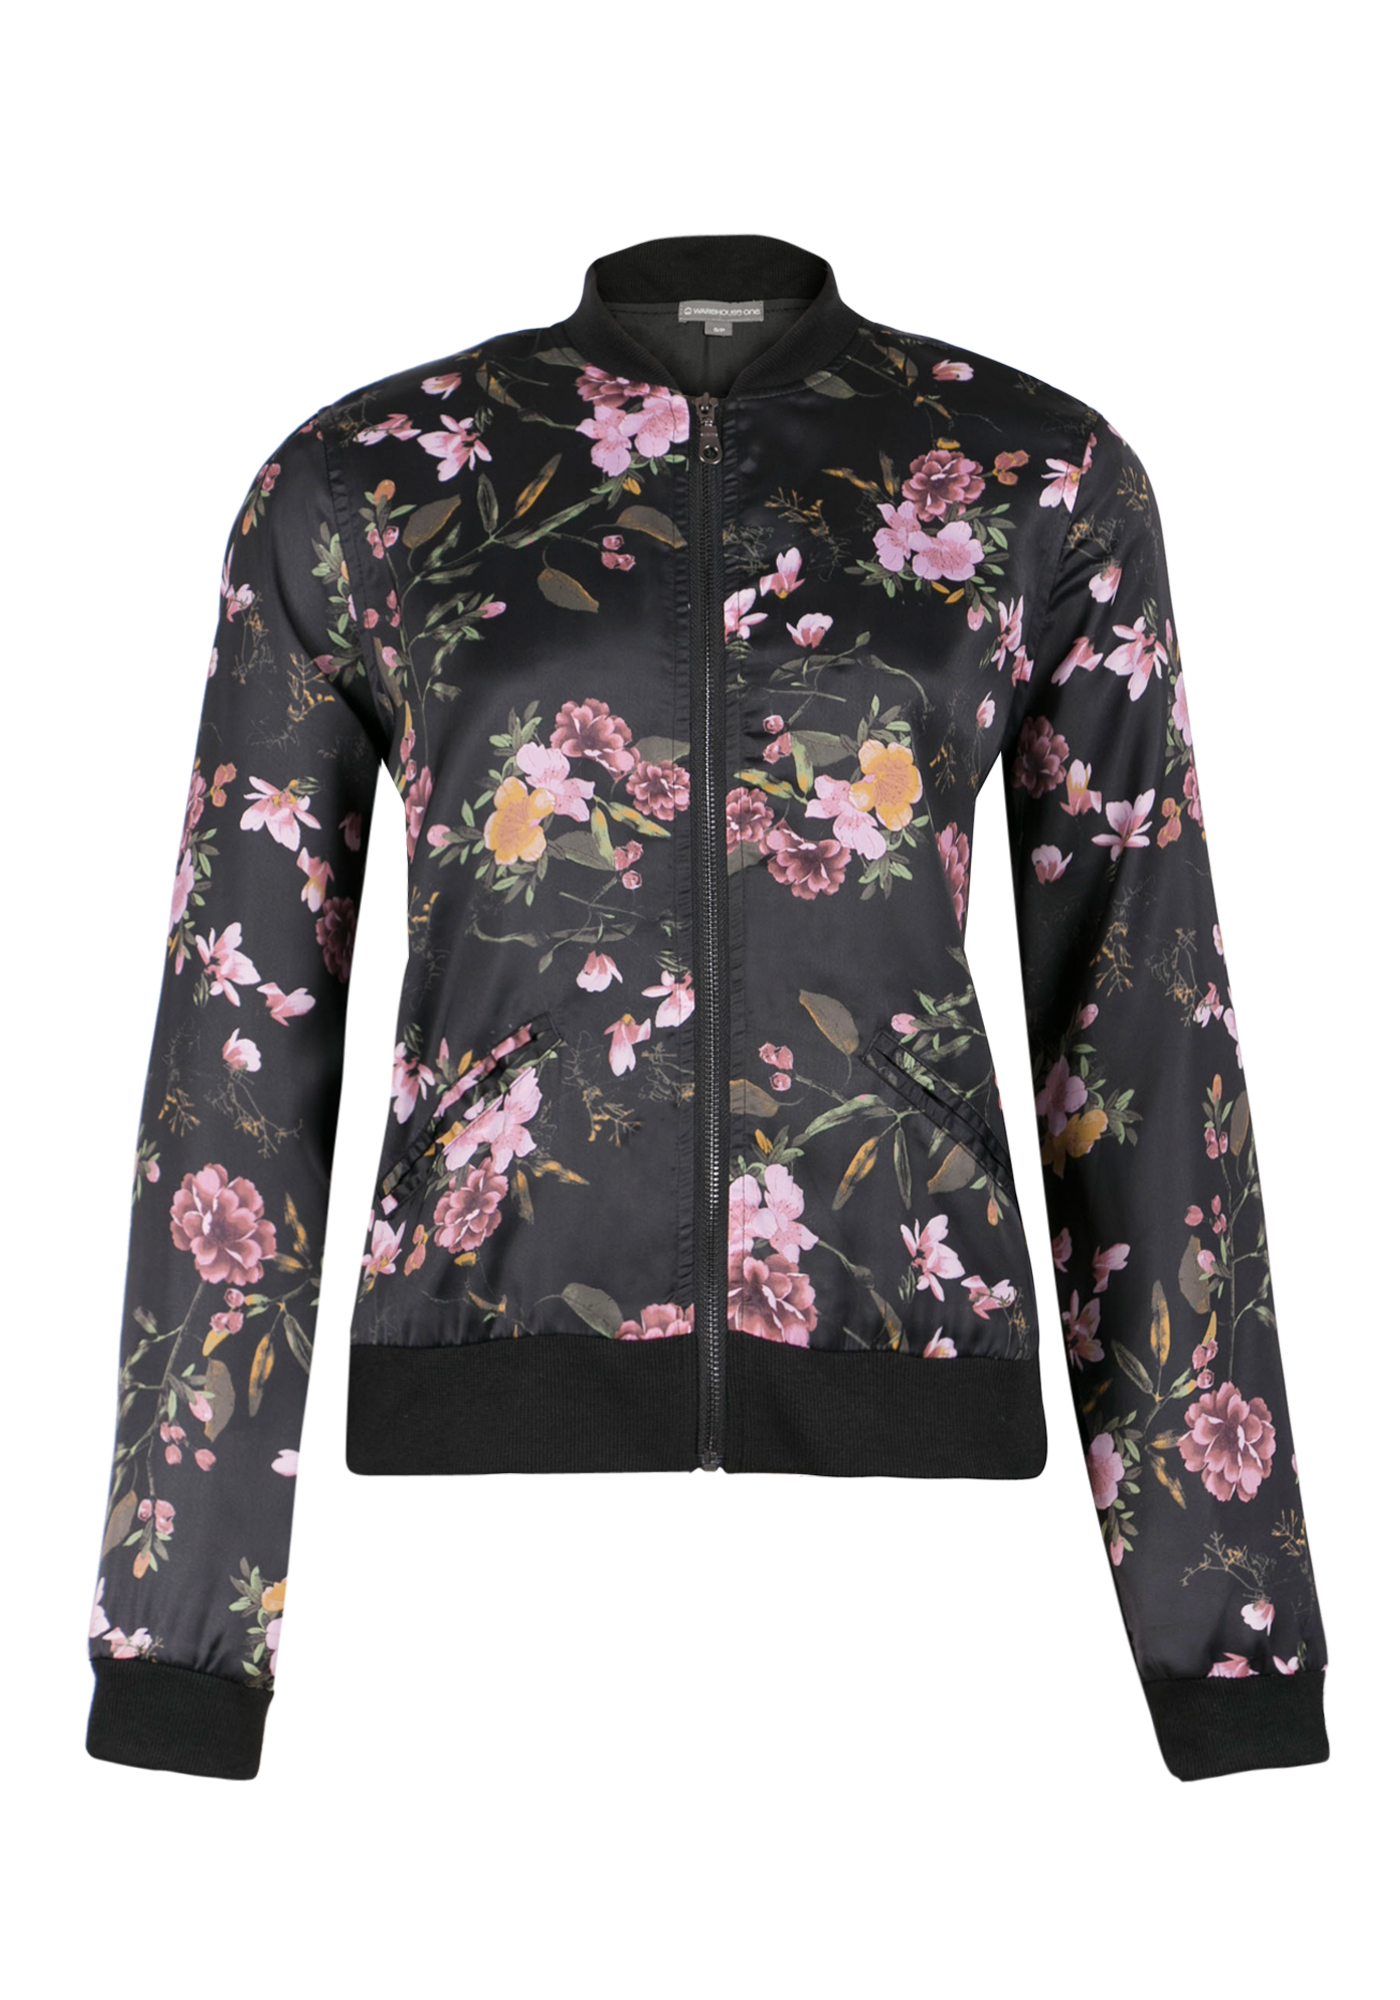 Product Features The floral bomber jacket easy to pair with any jeans, pants, shorts, dress etc.